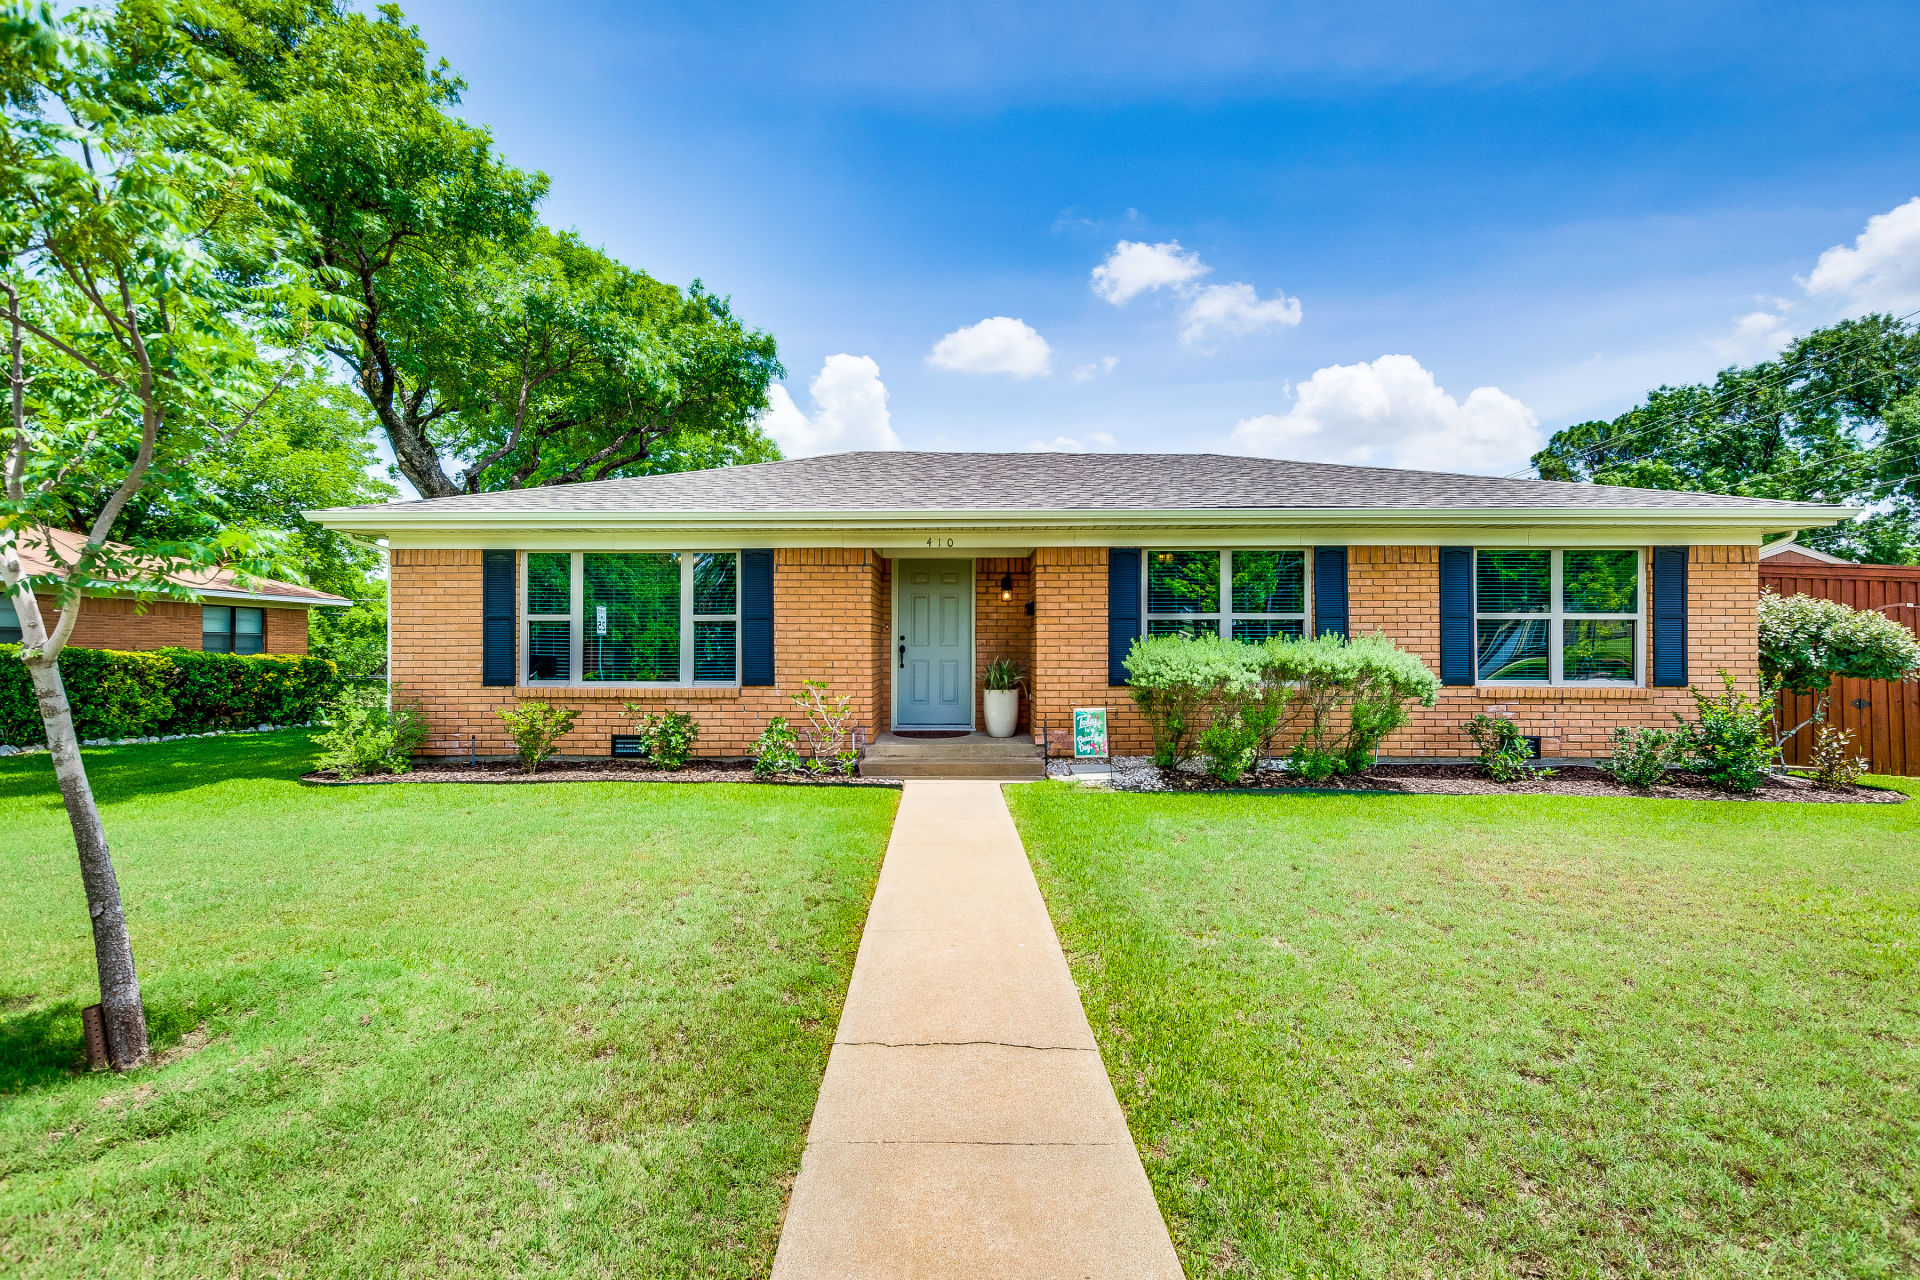 JUST LISTED IN LEWISVILLE!